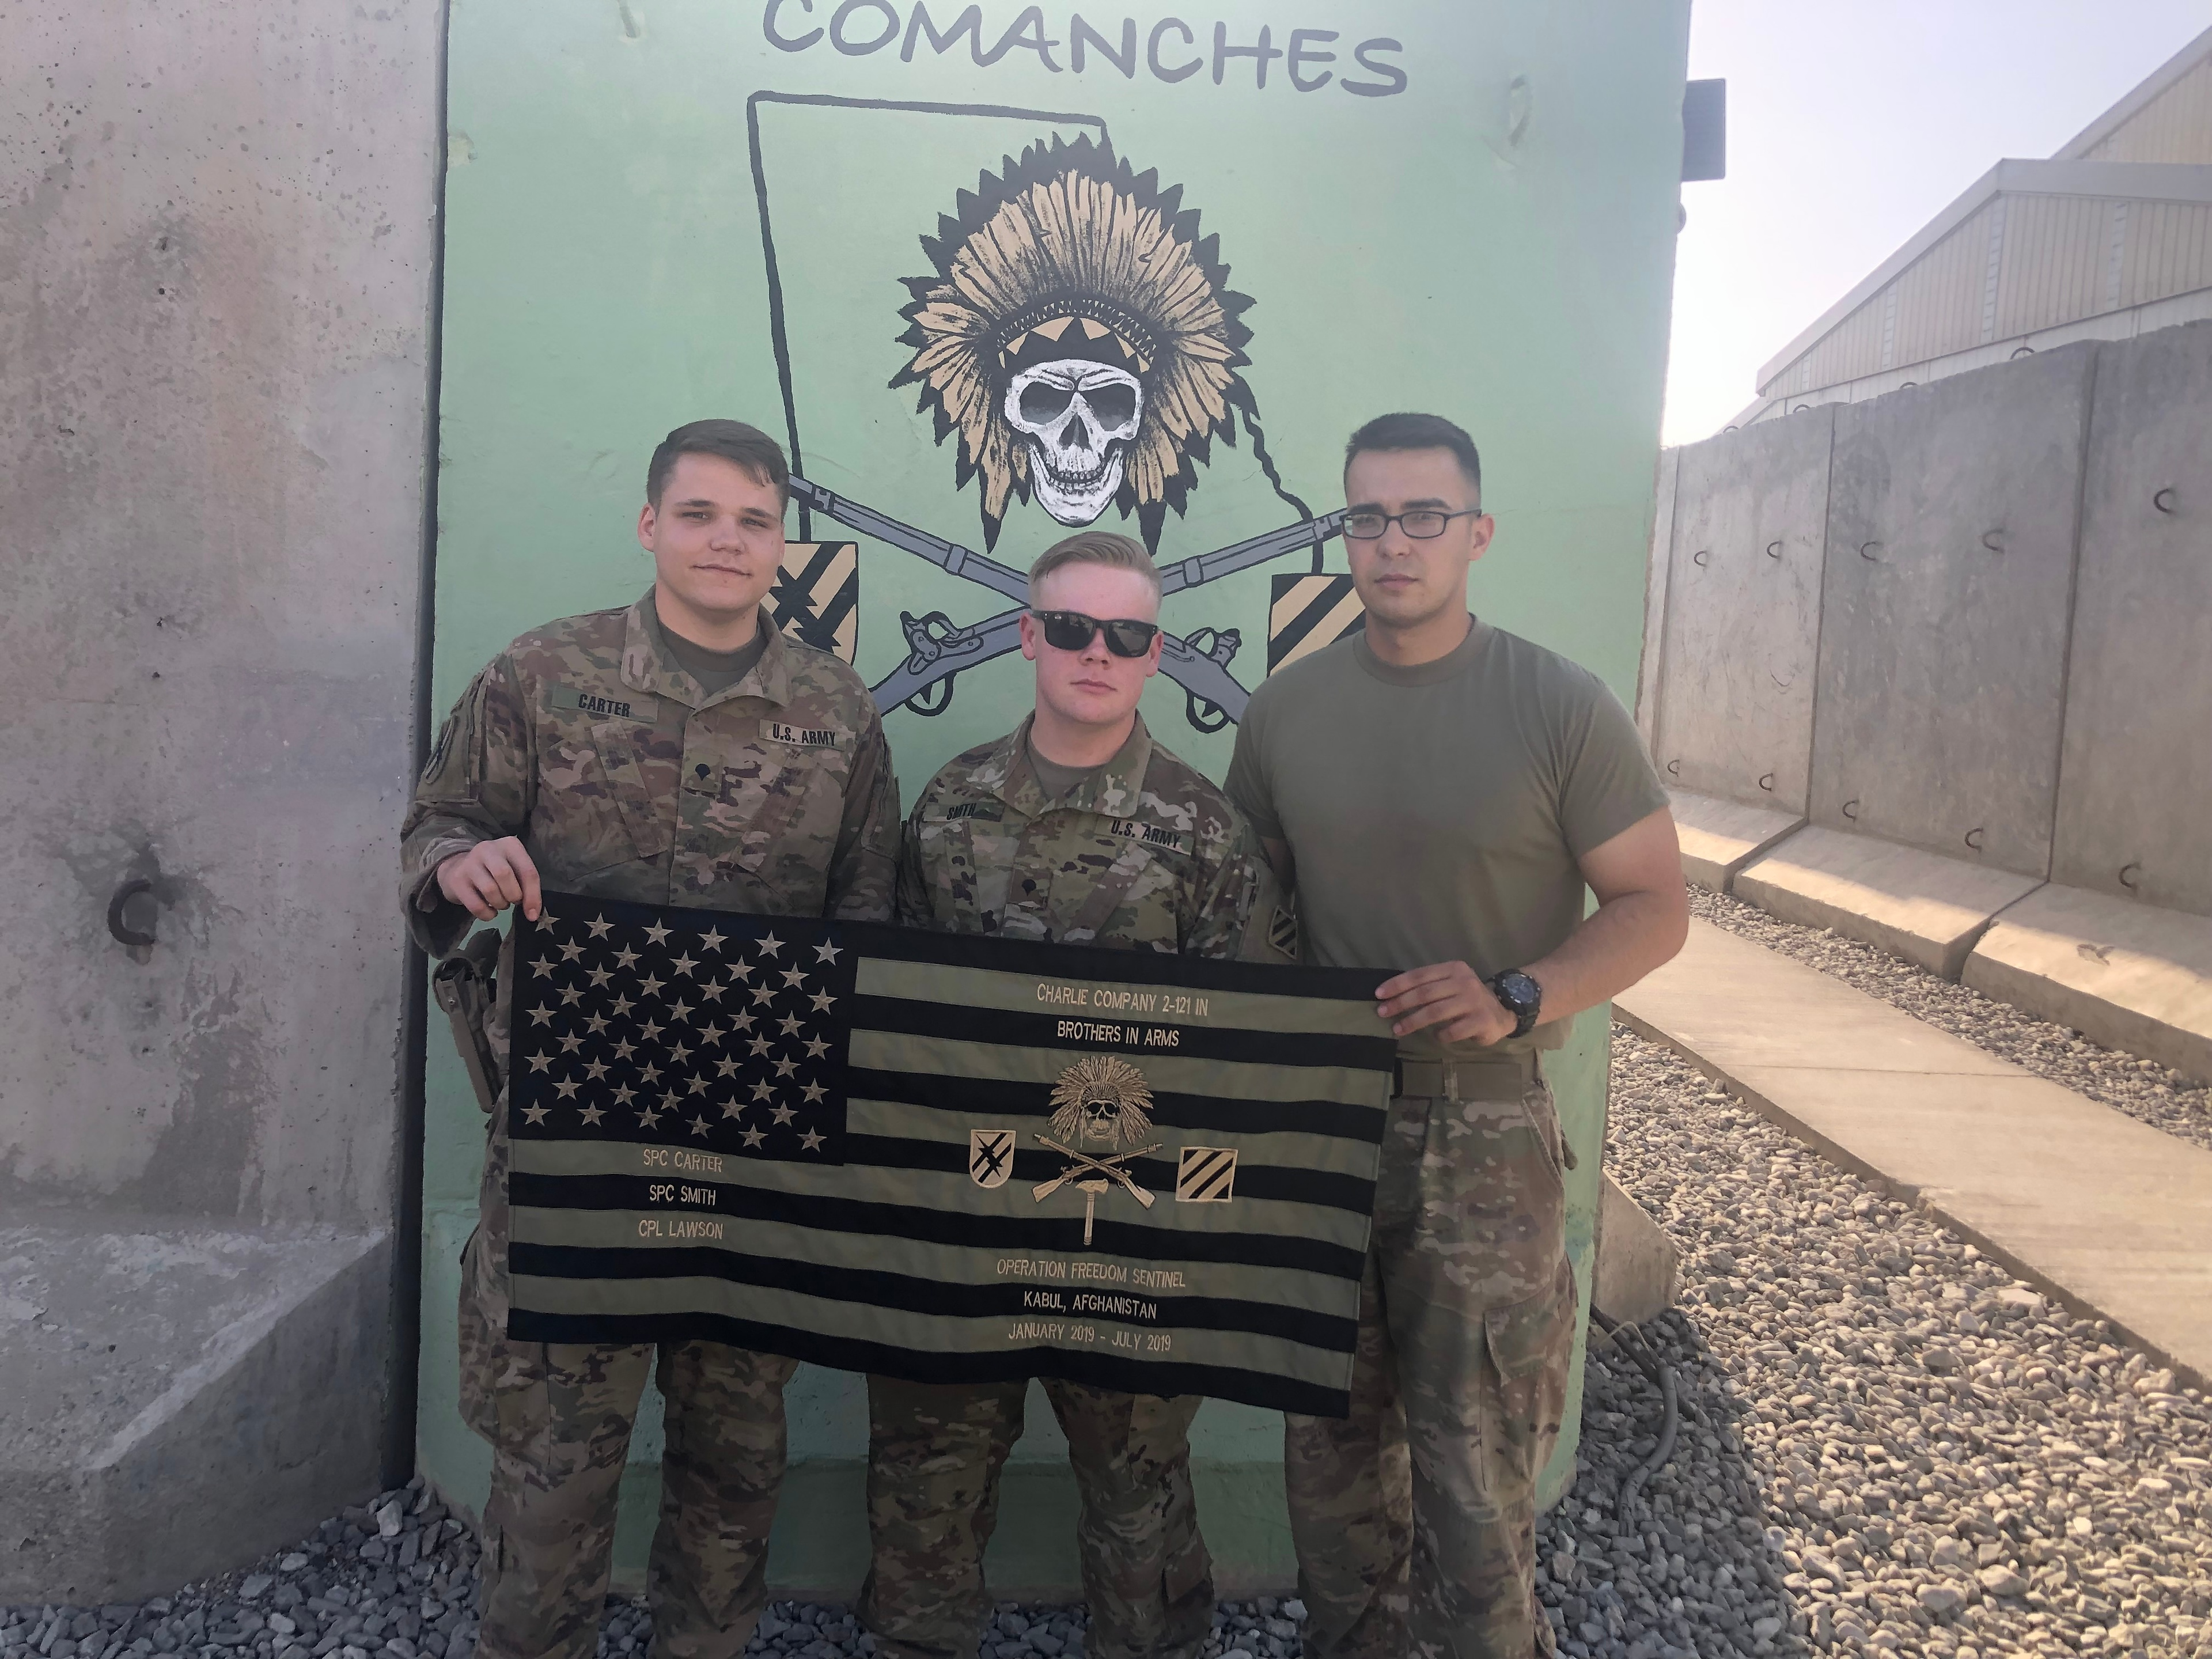 Carter (right) and Lawson (left) in Afghanistan.